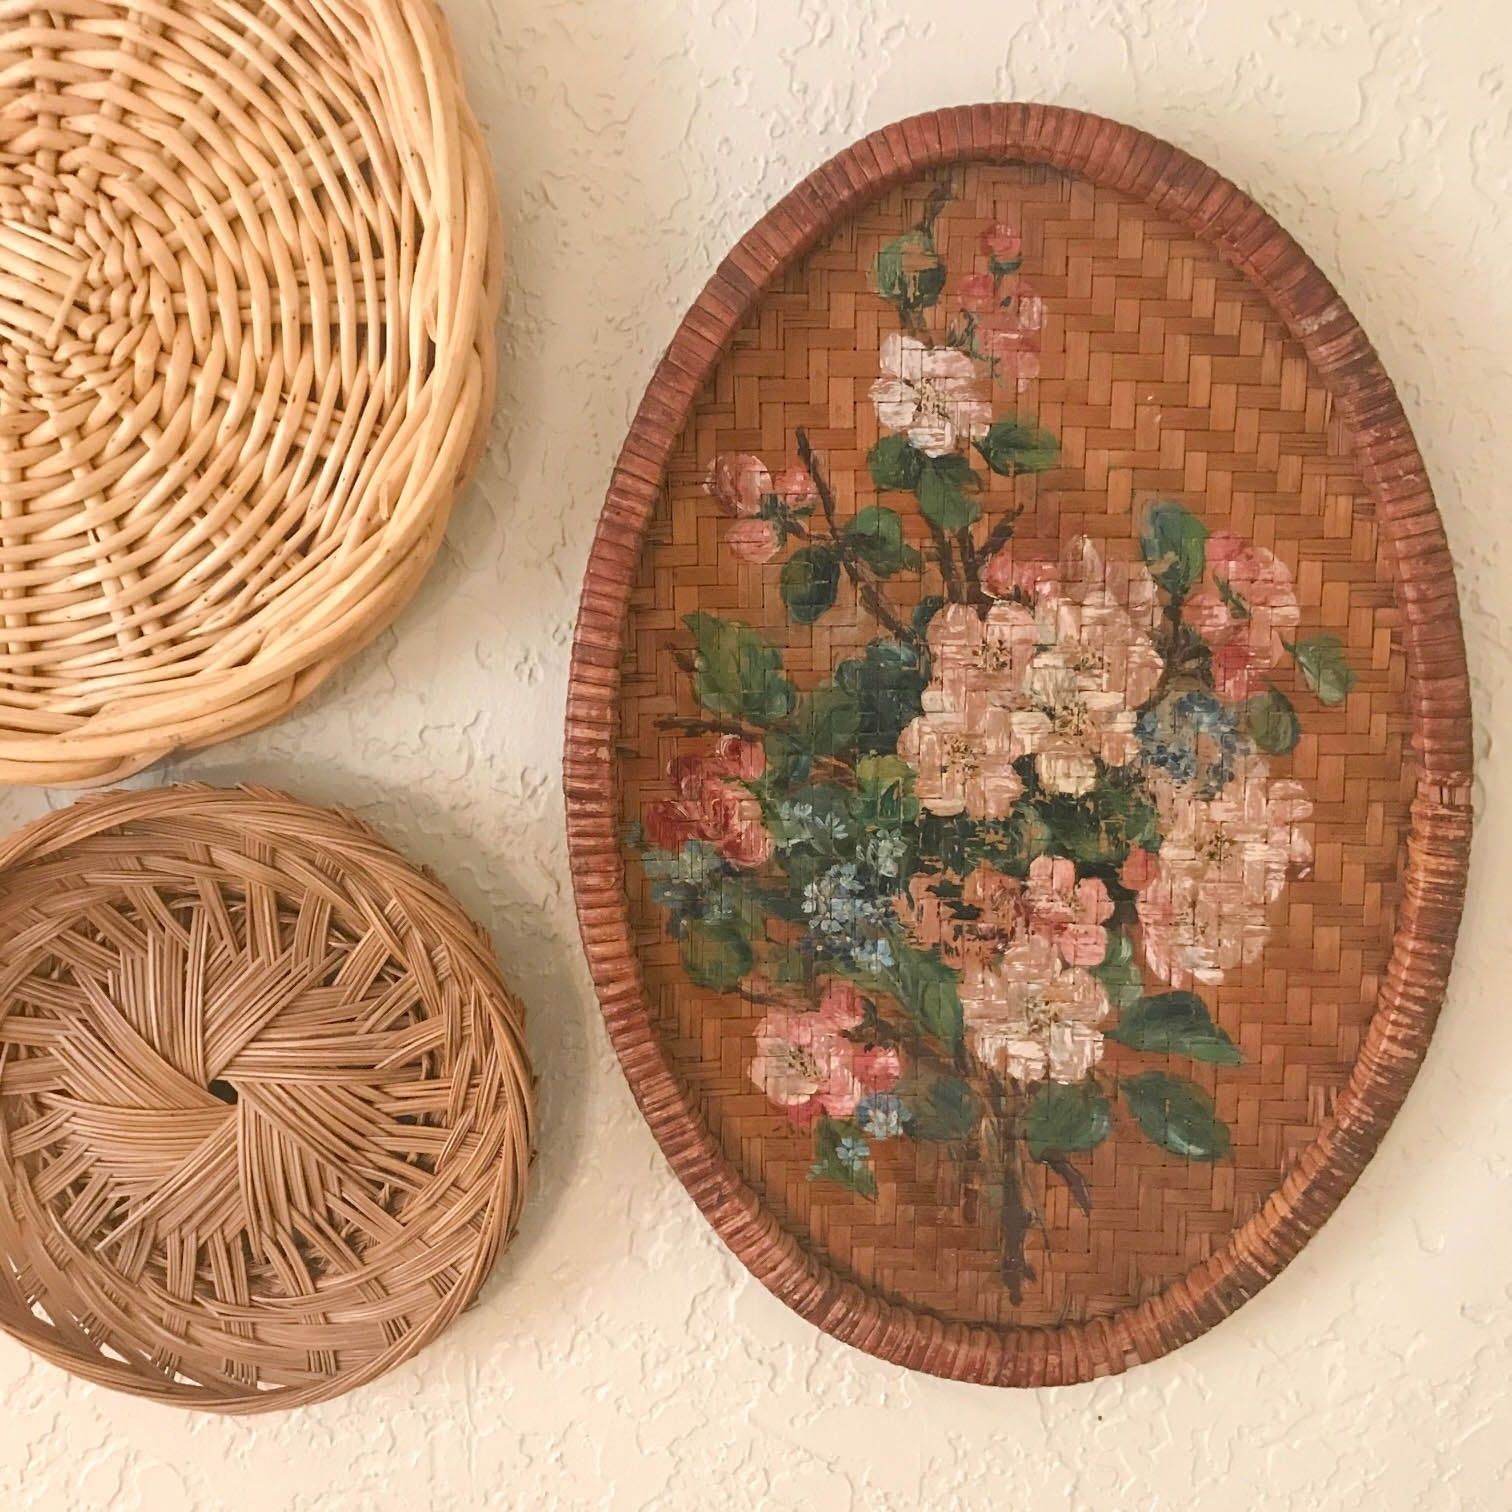 Best And Newest Vintage Wicker Wall Art, Basket Wall Decor, Painted Wicker Wall For Woven Basket Wall Art (View 13 of 15)